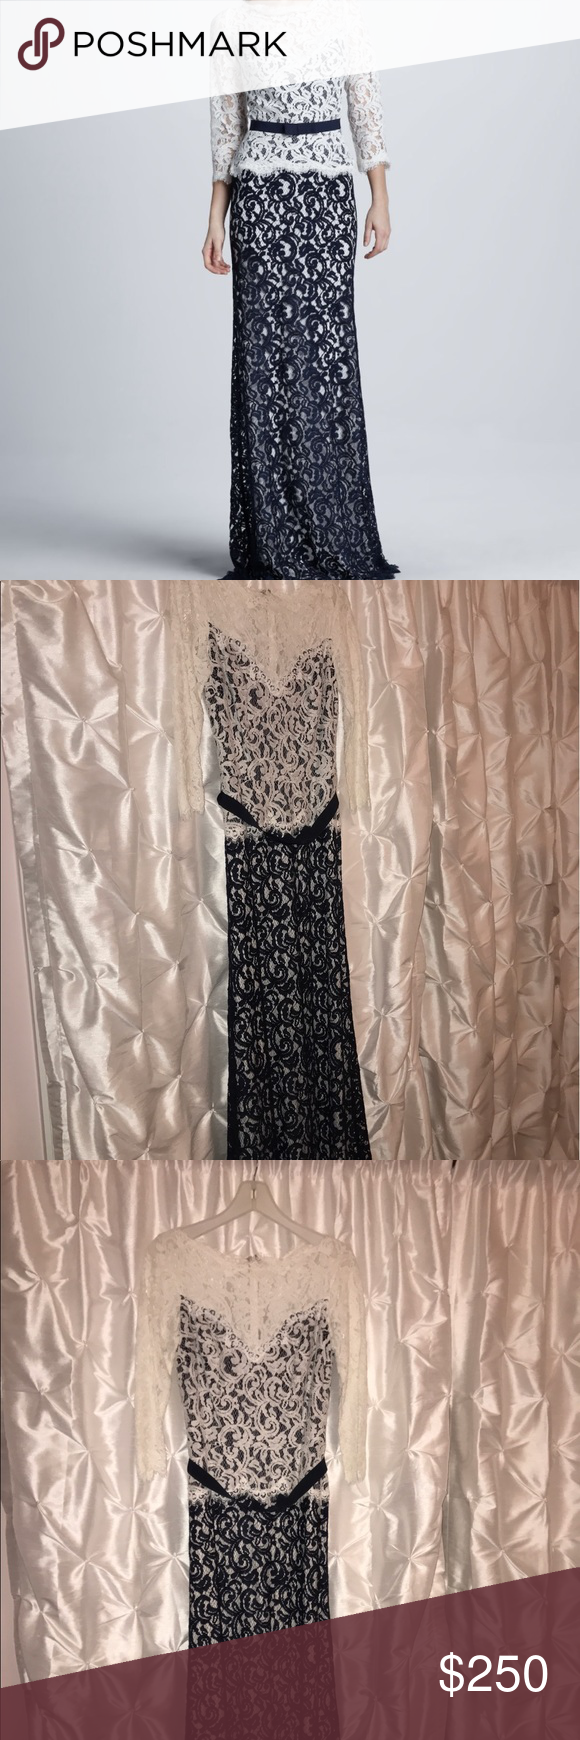 Tadashi Shoji two-toned lace gown This timeless Tadashi Shoji two-toned gown is perfect for any formal affair. It has a white lace long sleeved top and a navy blue base and bottom. Stunning. Size 6. Worn once. Tadashi Shoji Dresses Long Sleeve